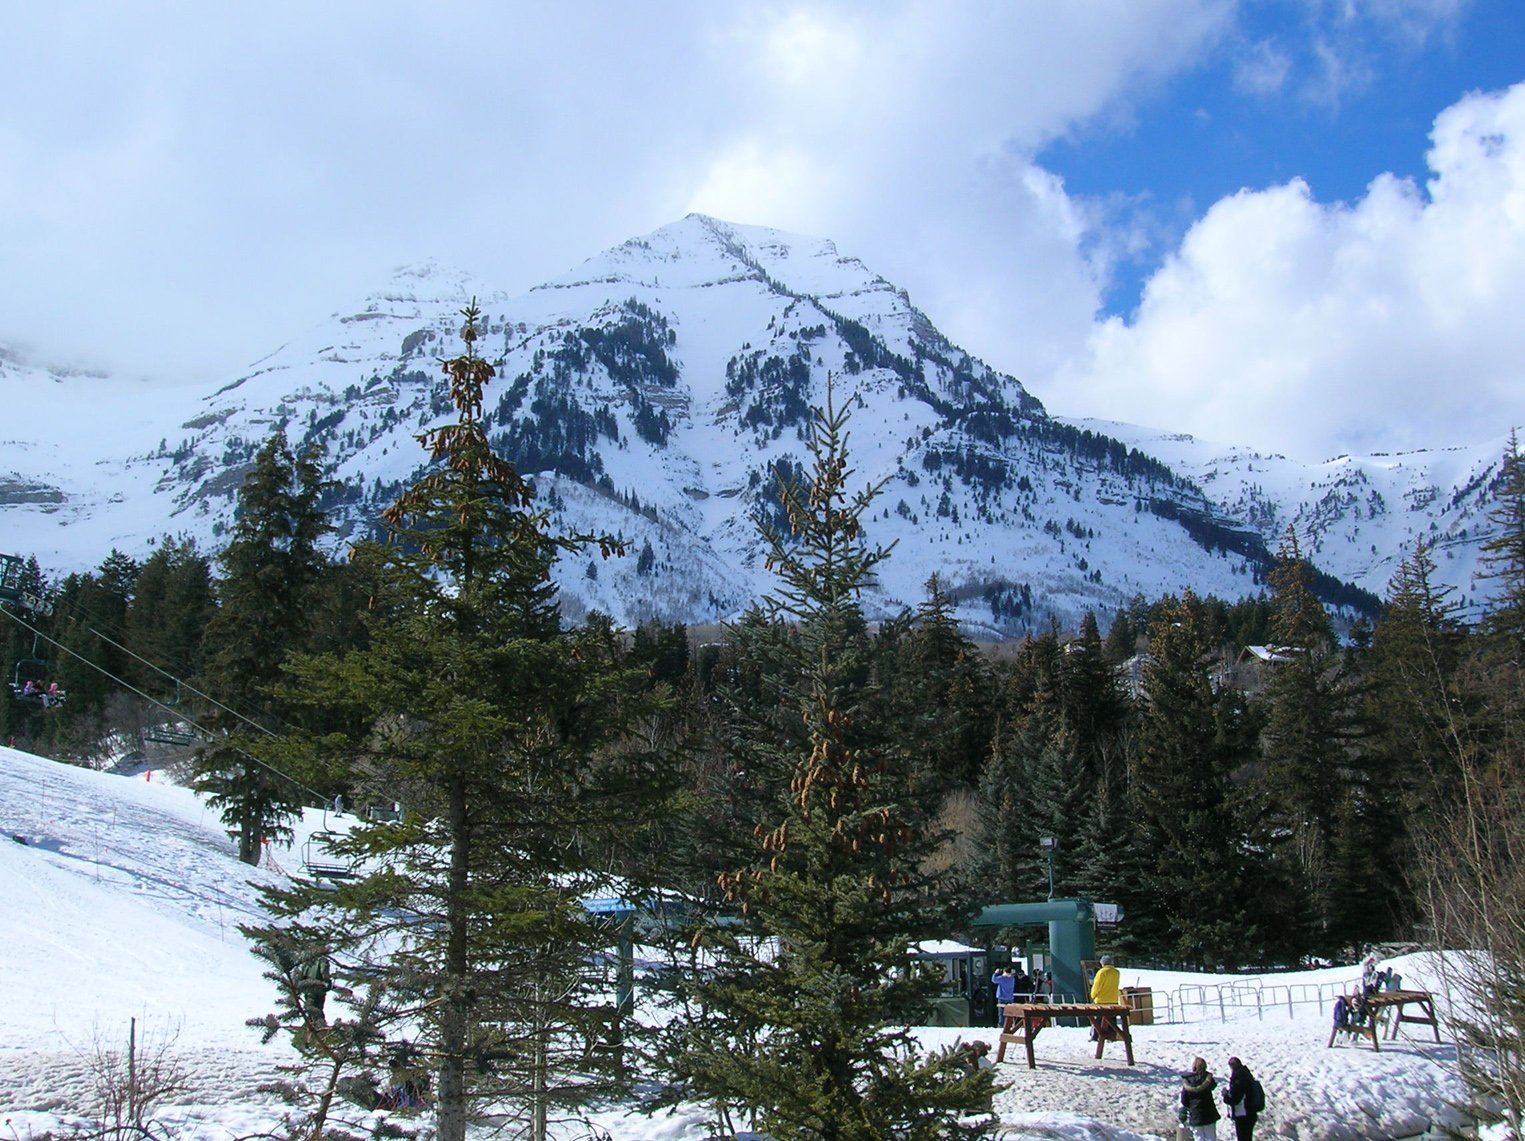 The Sundance Ski Resort is in a picturesque setting at the base of Mount Timpanogos in Utah.